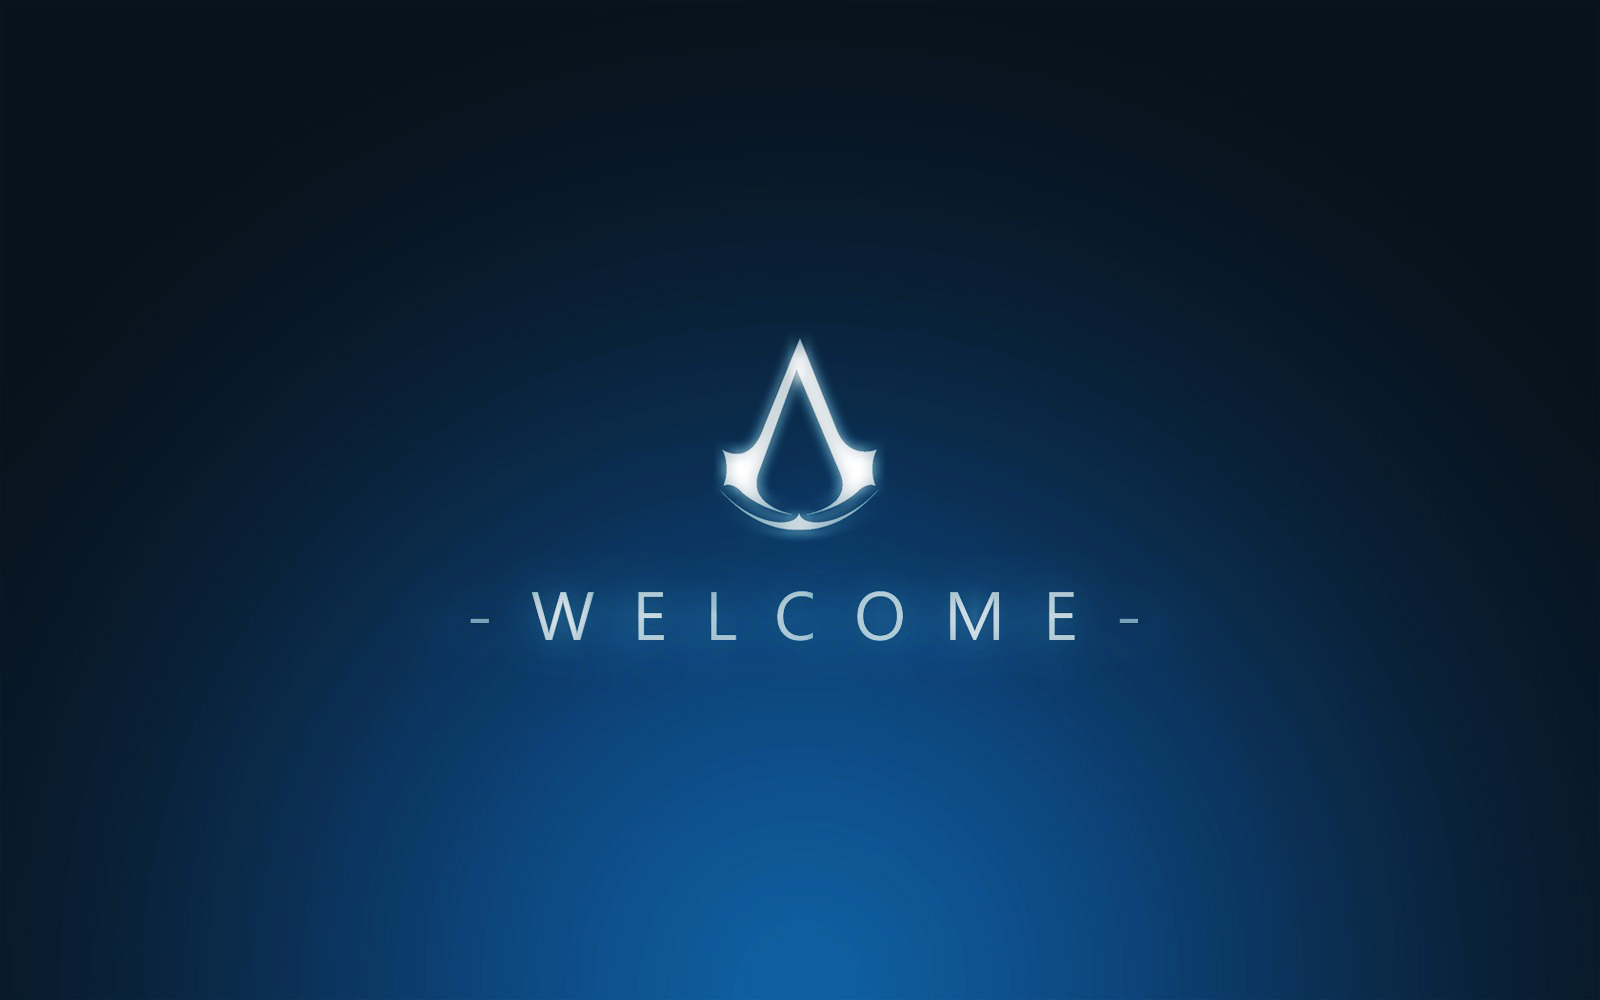 http://4.bp.blogspot.com/-KVTJkolQoQM/Too8RdR2KWI/AAAAAAAADVk/tKQfh6kvH-s/s1600/Assassin%27s_Creed_Logo_Blue_HD_Wallpaper_GameWallBase.com.jpg.jpg